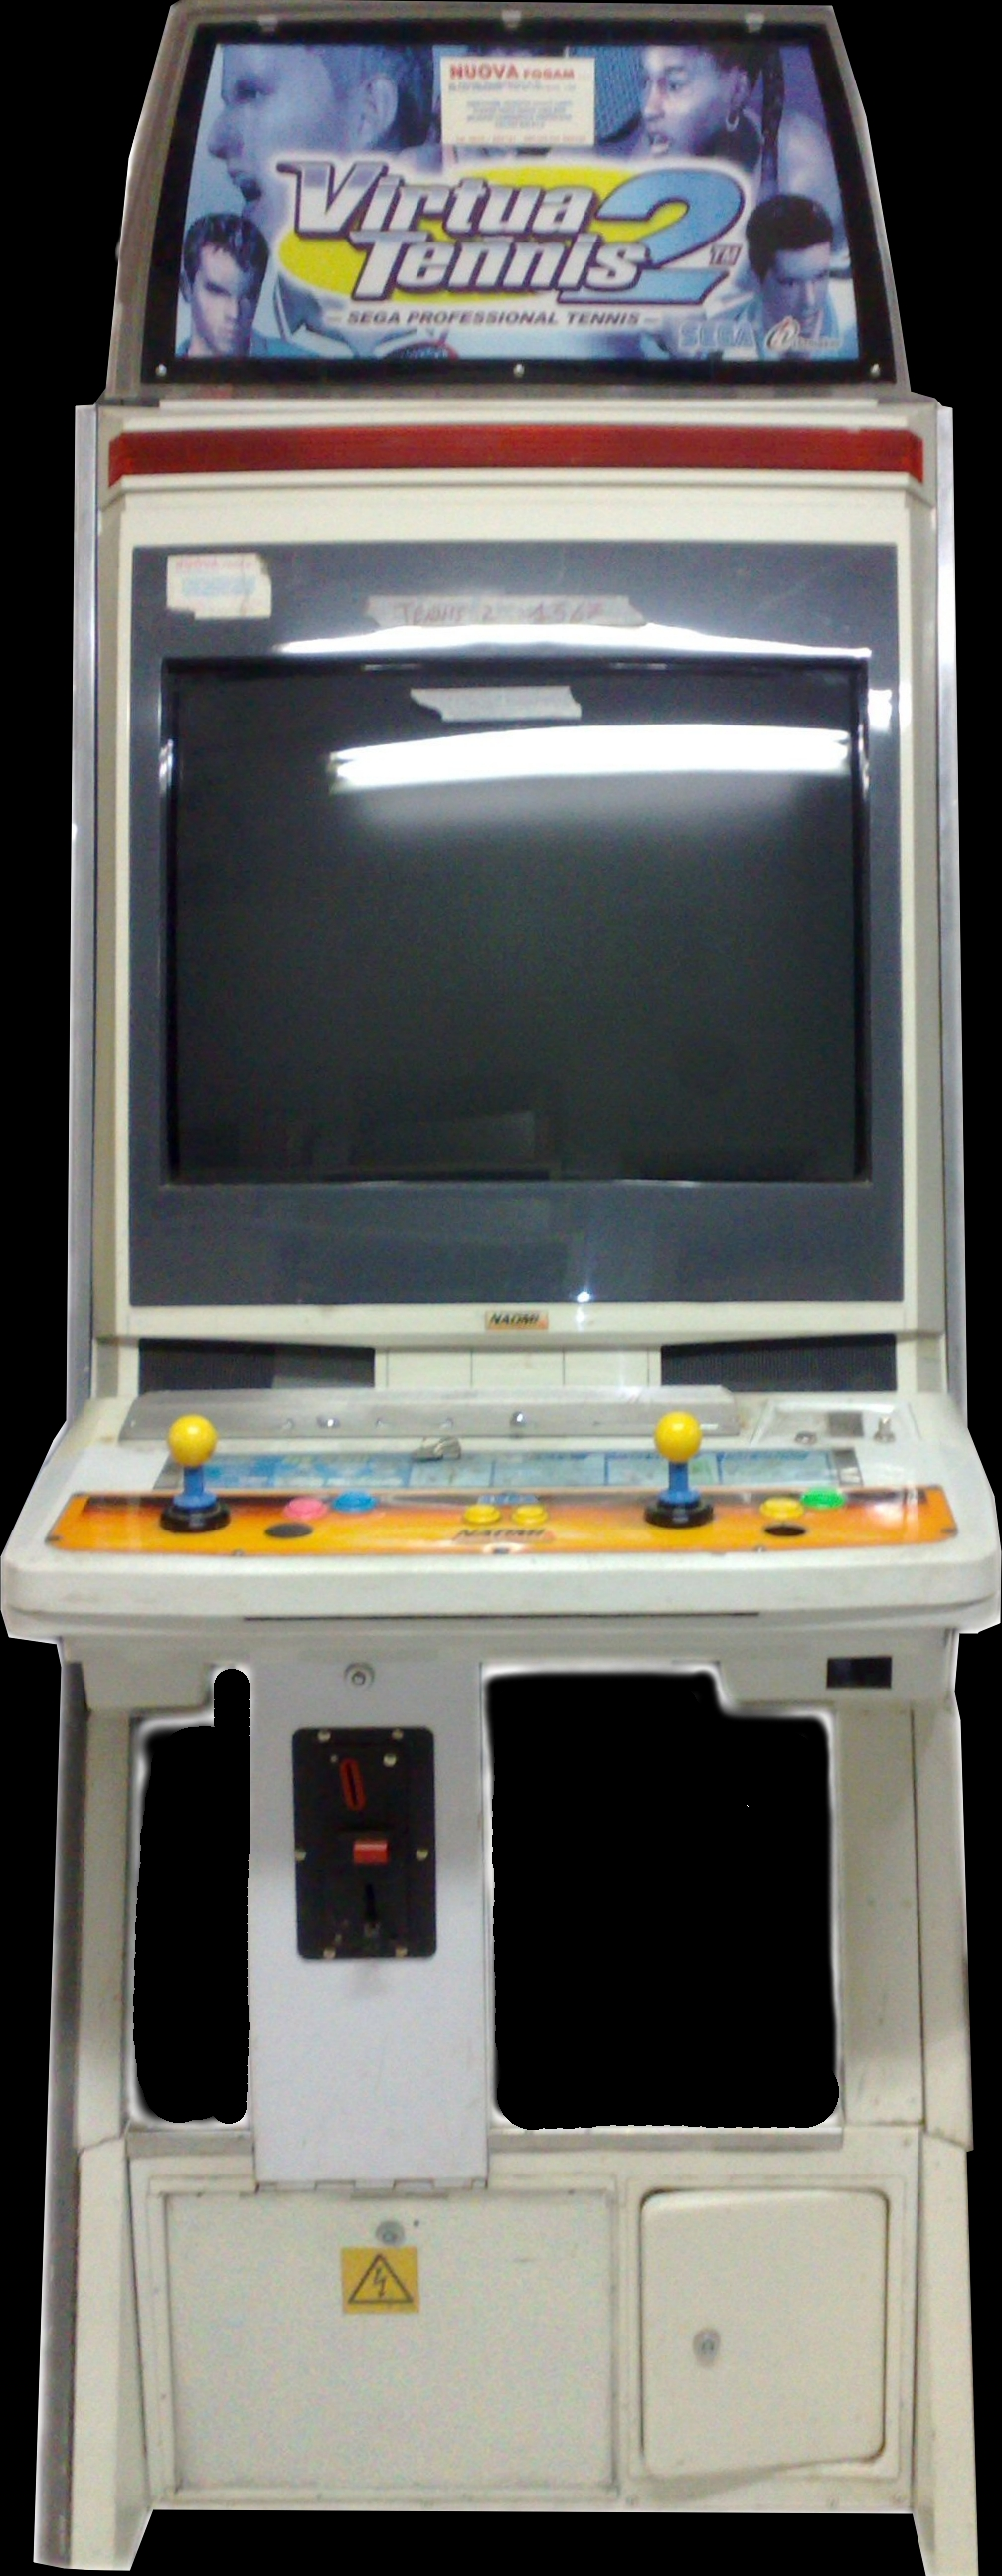 Virtua Tennis 2 / Power Smash 2 (Rev A) (GDS-0015A) Cabinet